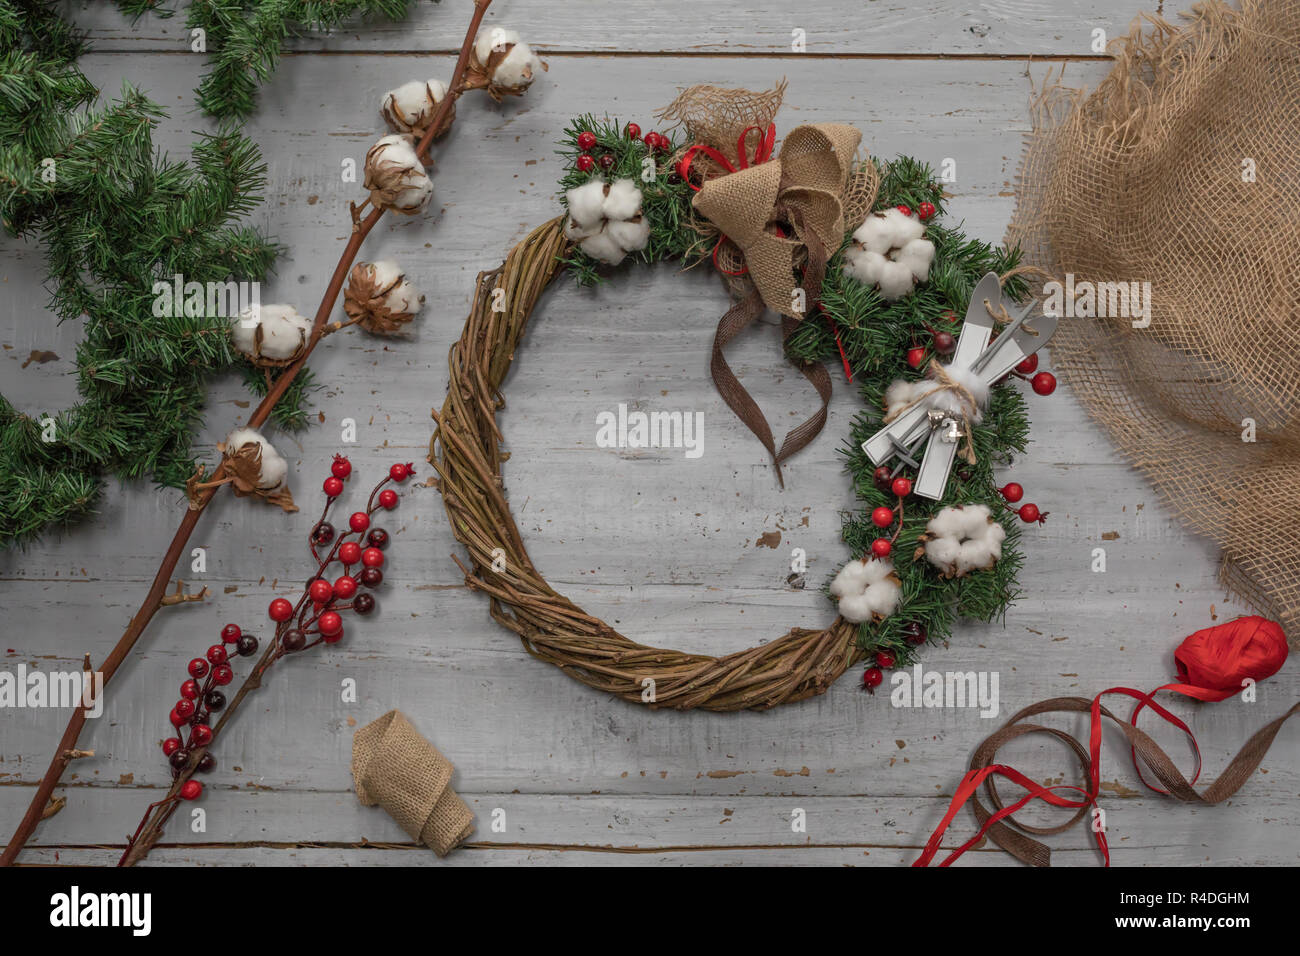 Making Christmas.Top View Of Stages Of Making Christmas Wreath With Fir